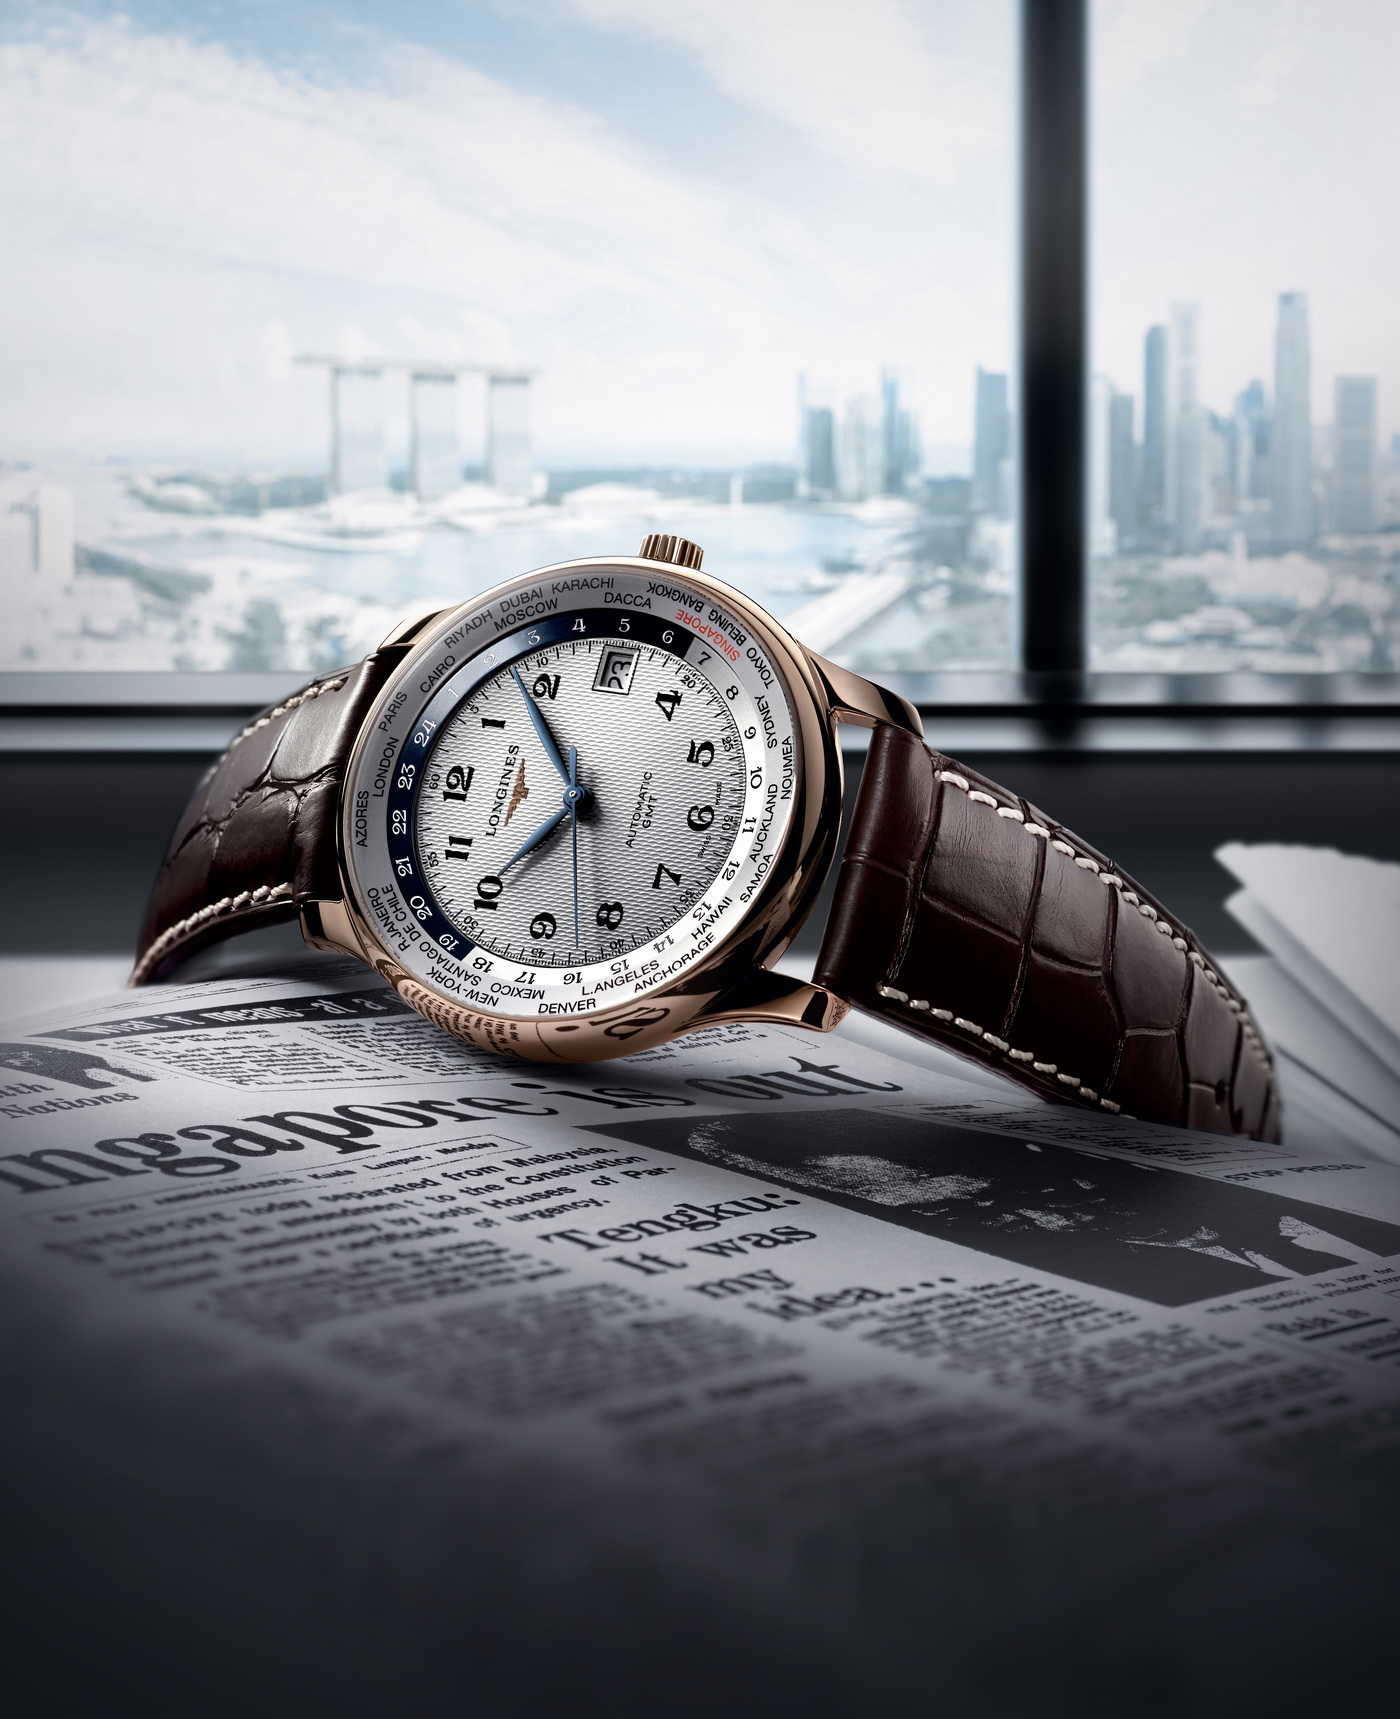 Longines Corporate Event: Longines celebrates Singapore's 50th Anniversary of Independence with an exclusive limited edition watch 2